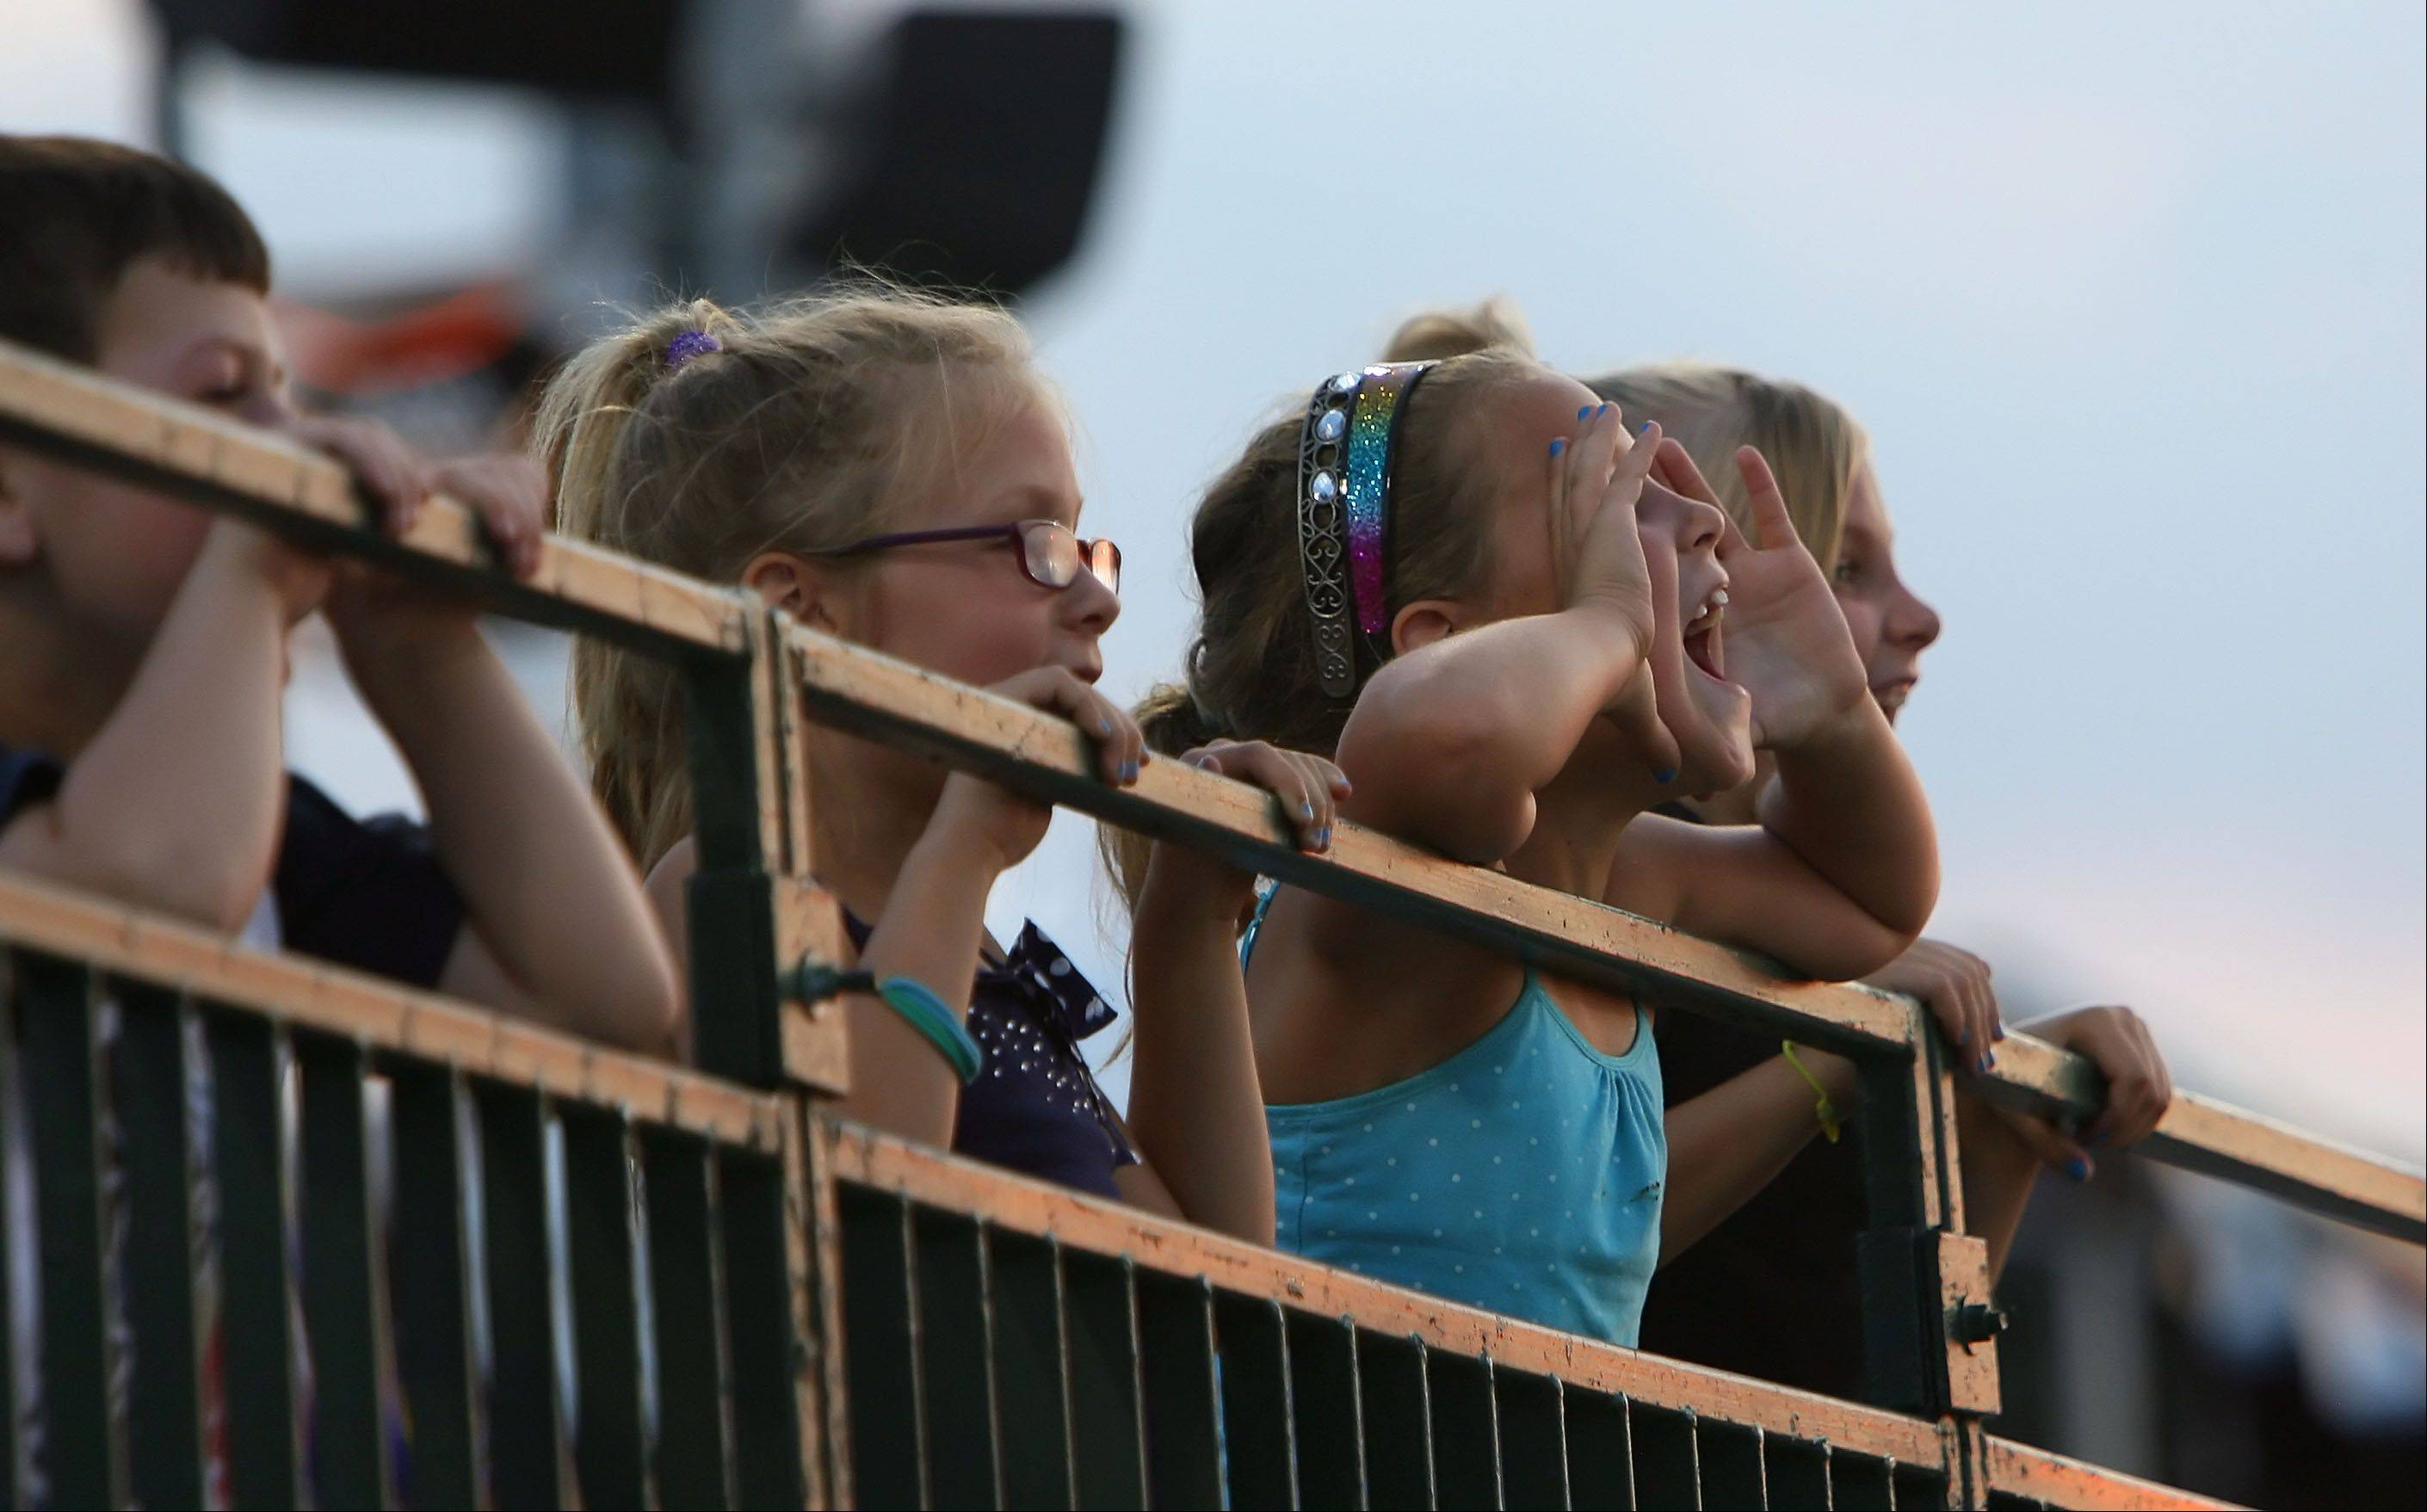 Kids cheer on their friends as they race the bases in between innings during the Lake County Fielders game Wednesday night.